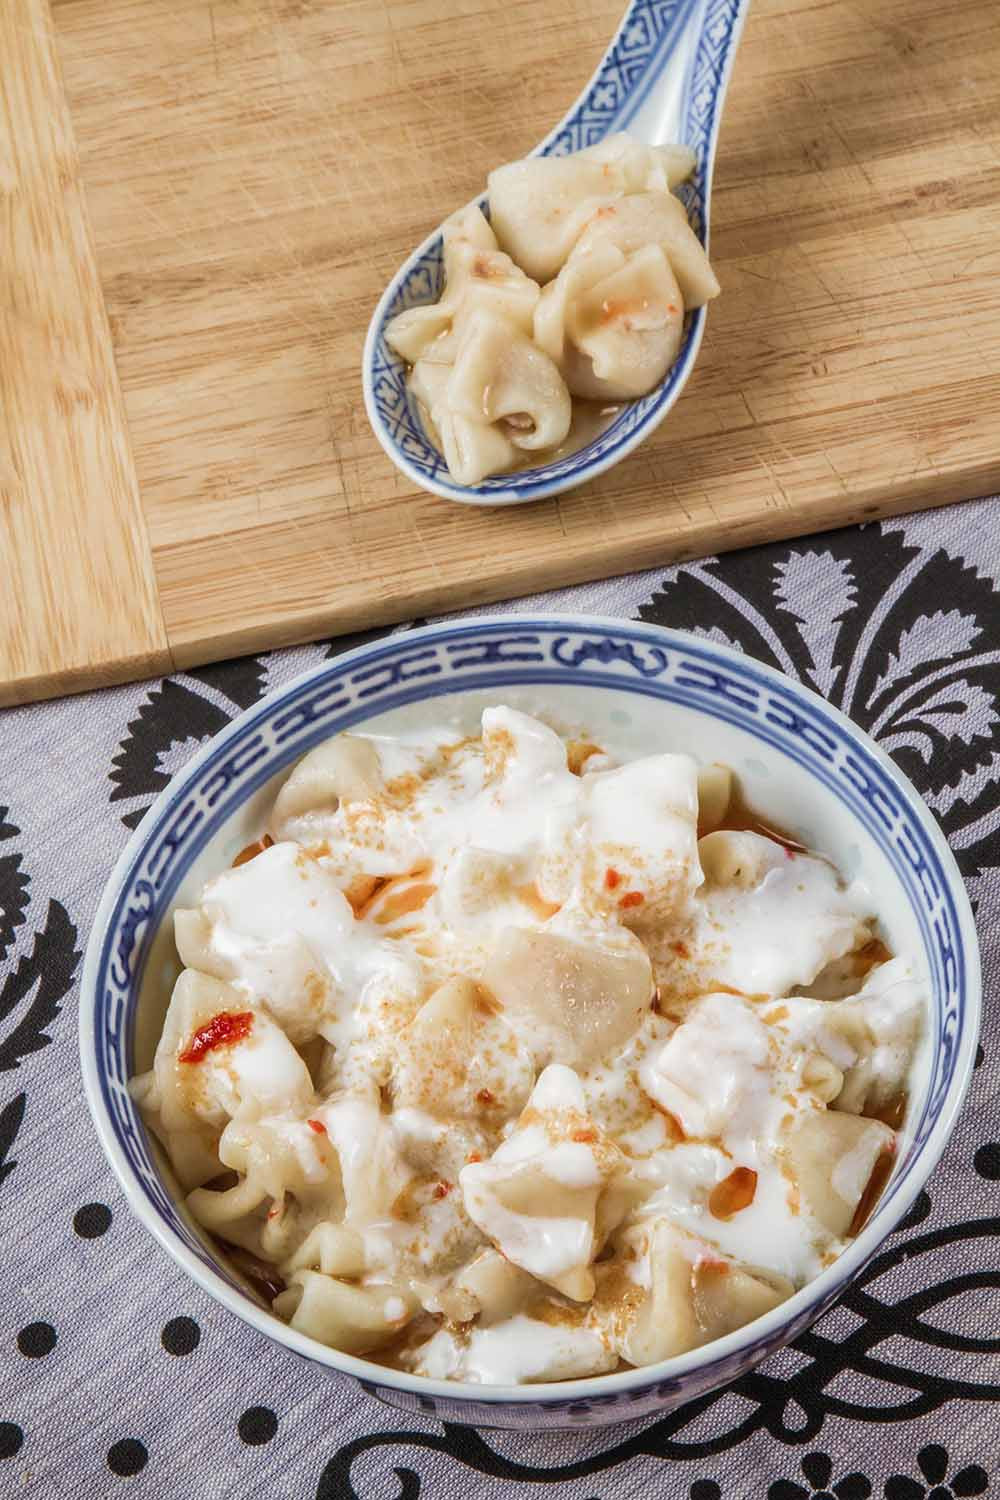 Sanal Manti Turkish Dumplings